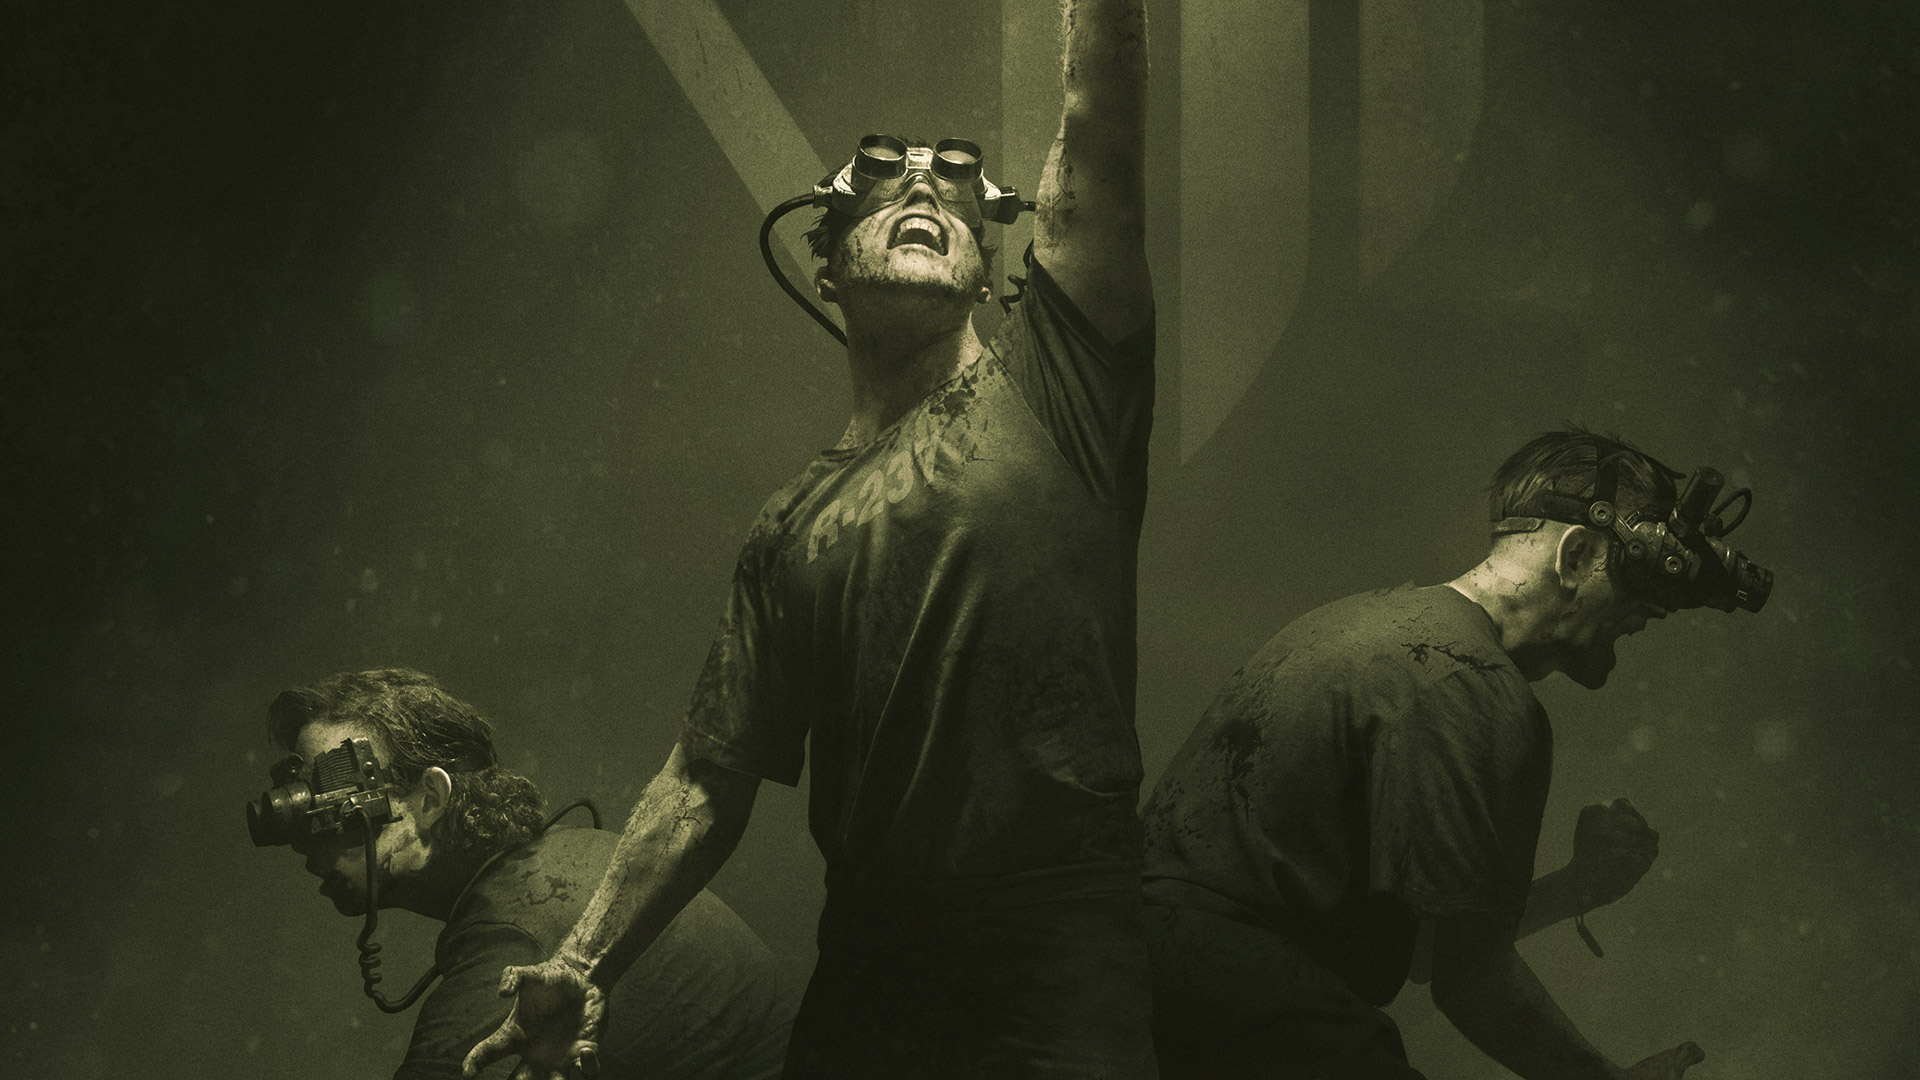 The Outlast Trials brings the horror series into the Cold War era